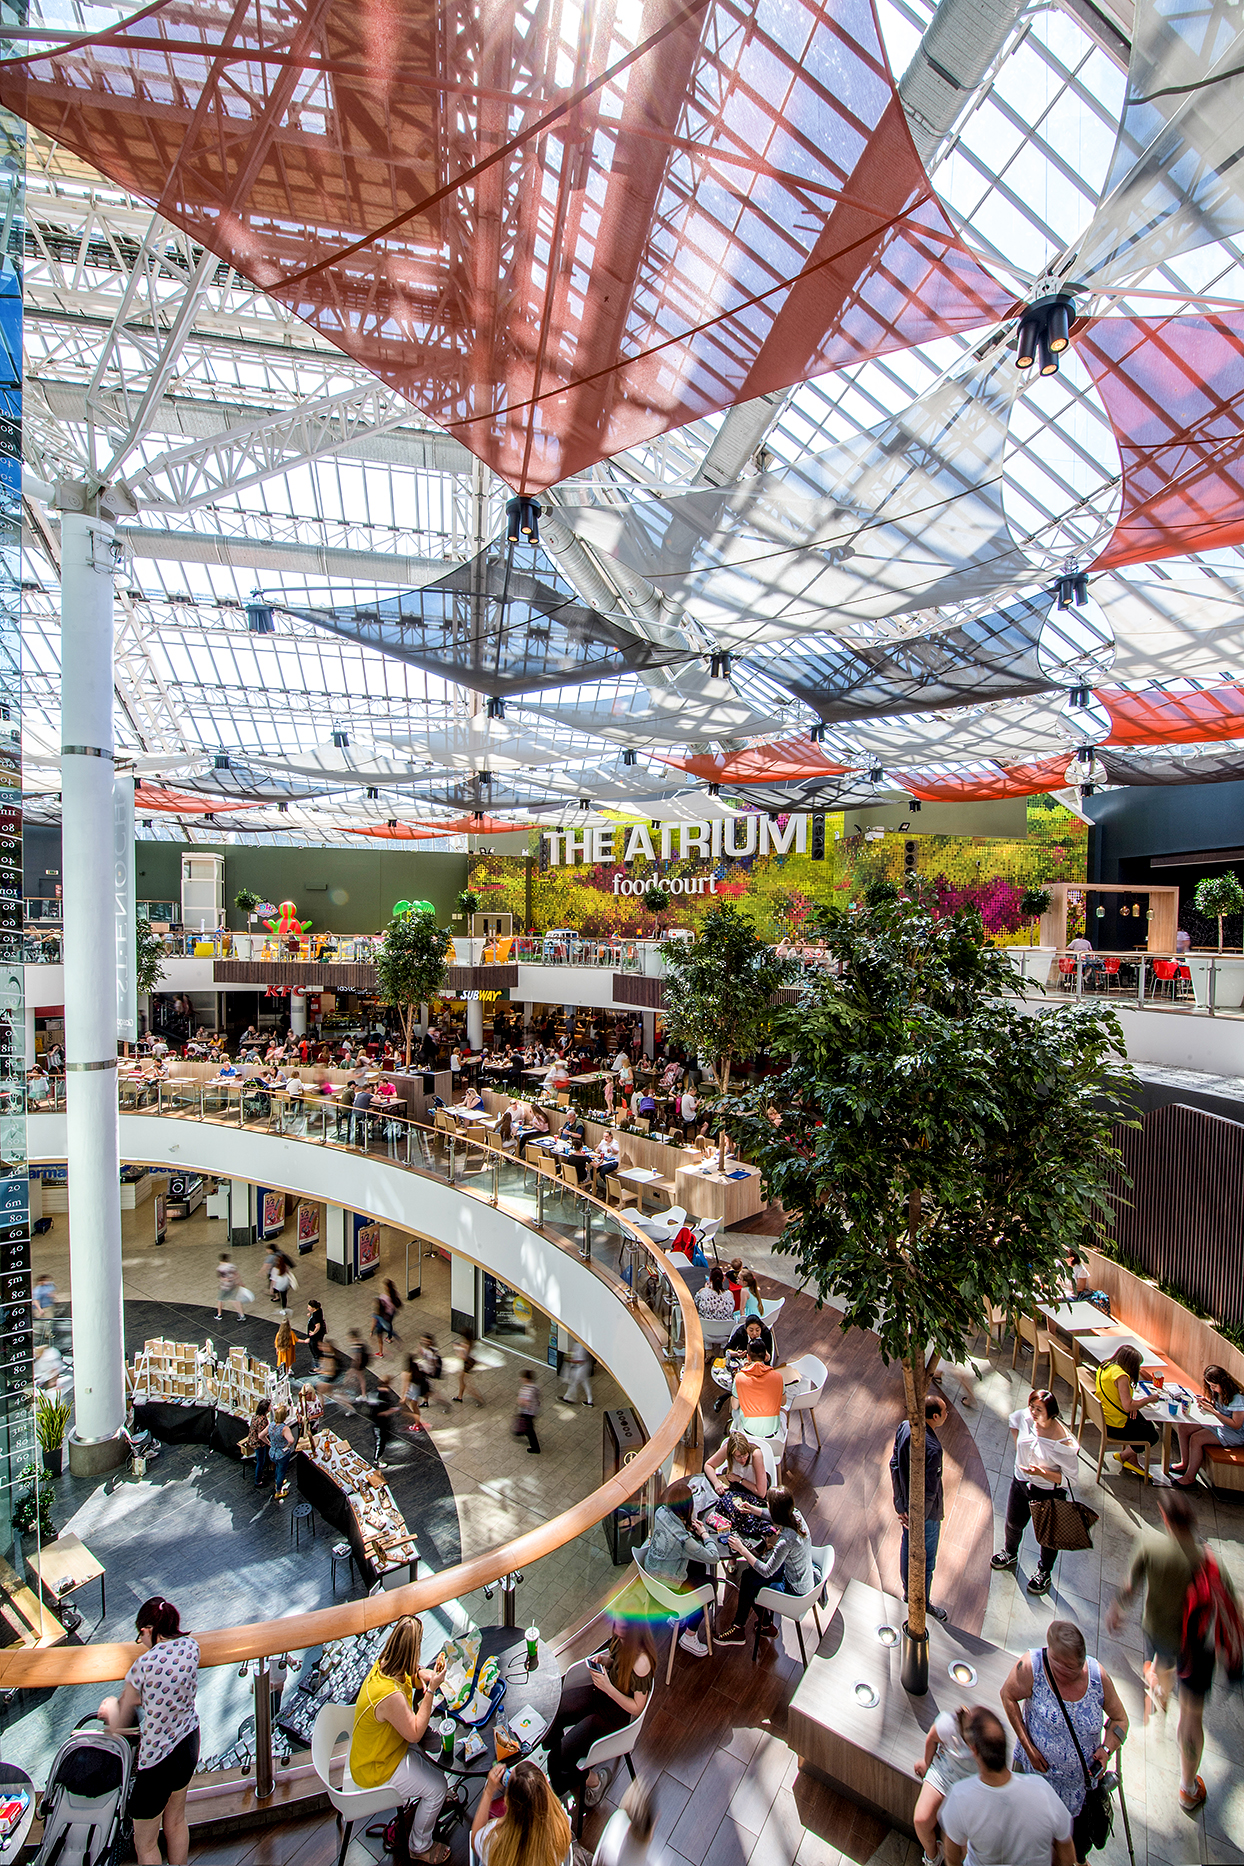 EAT AND BE MERRY: St Enoch Centre's food court boasts an incredible variety of options.